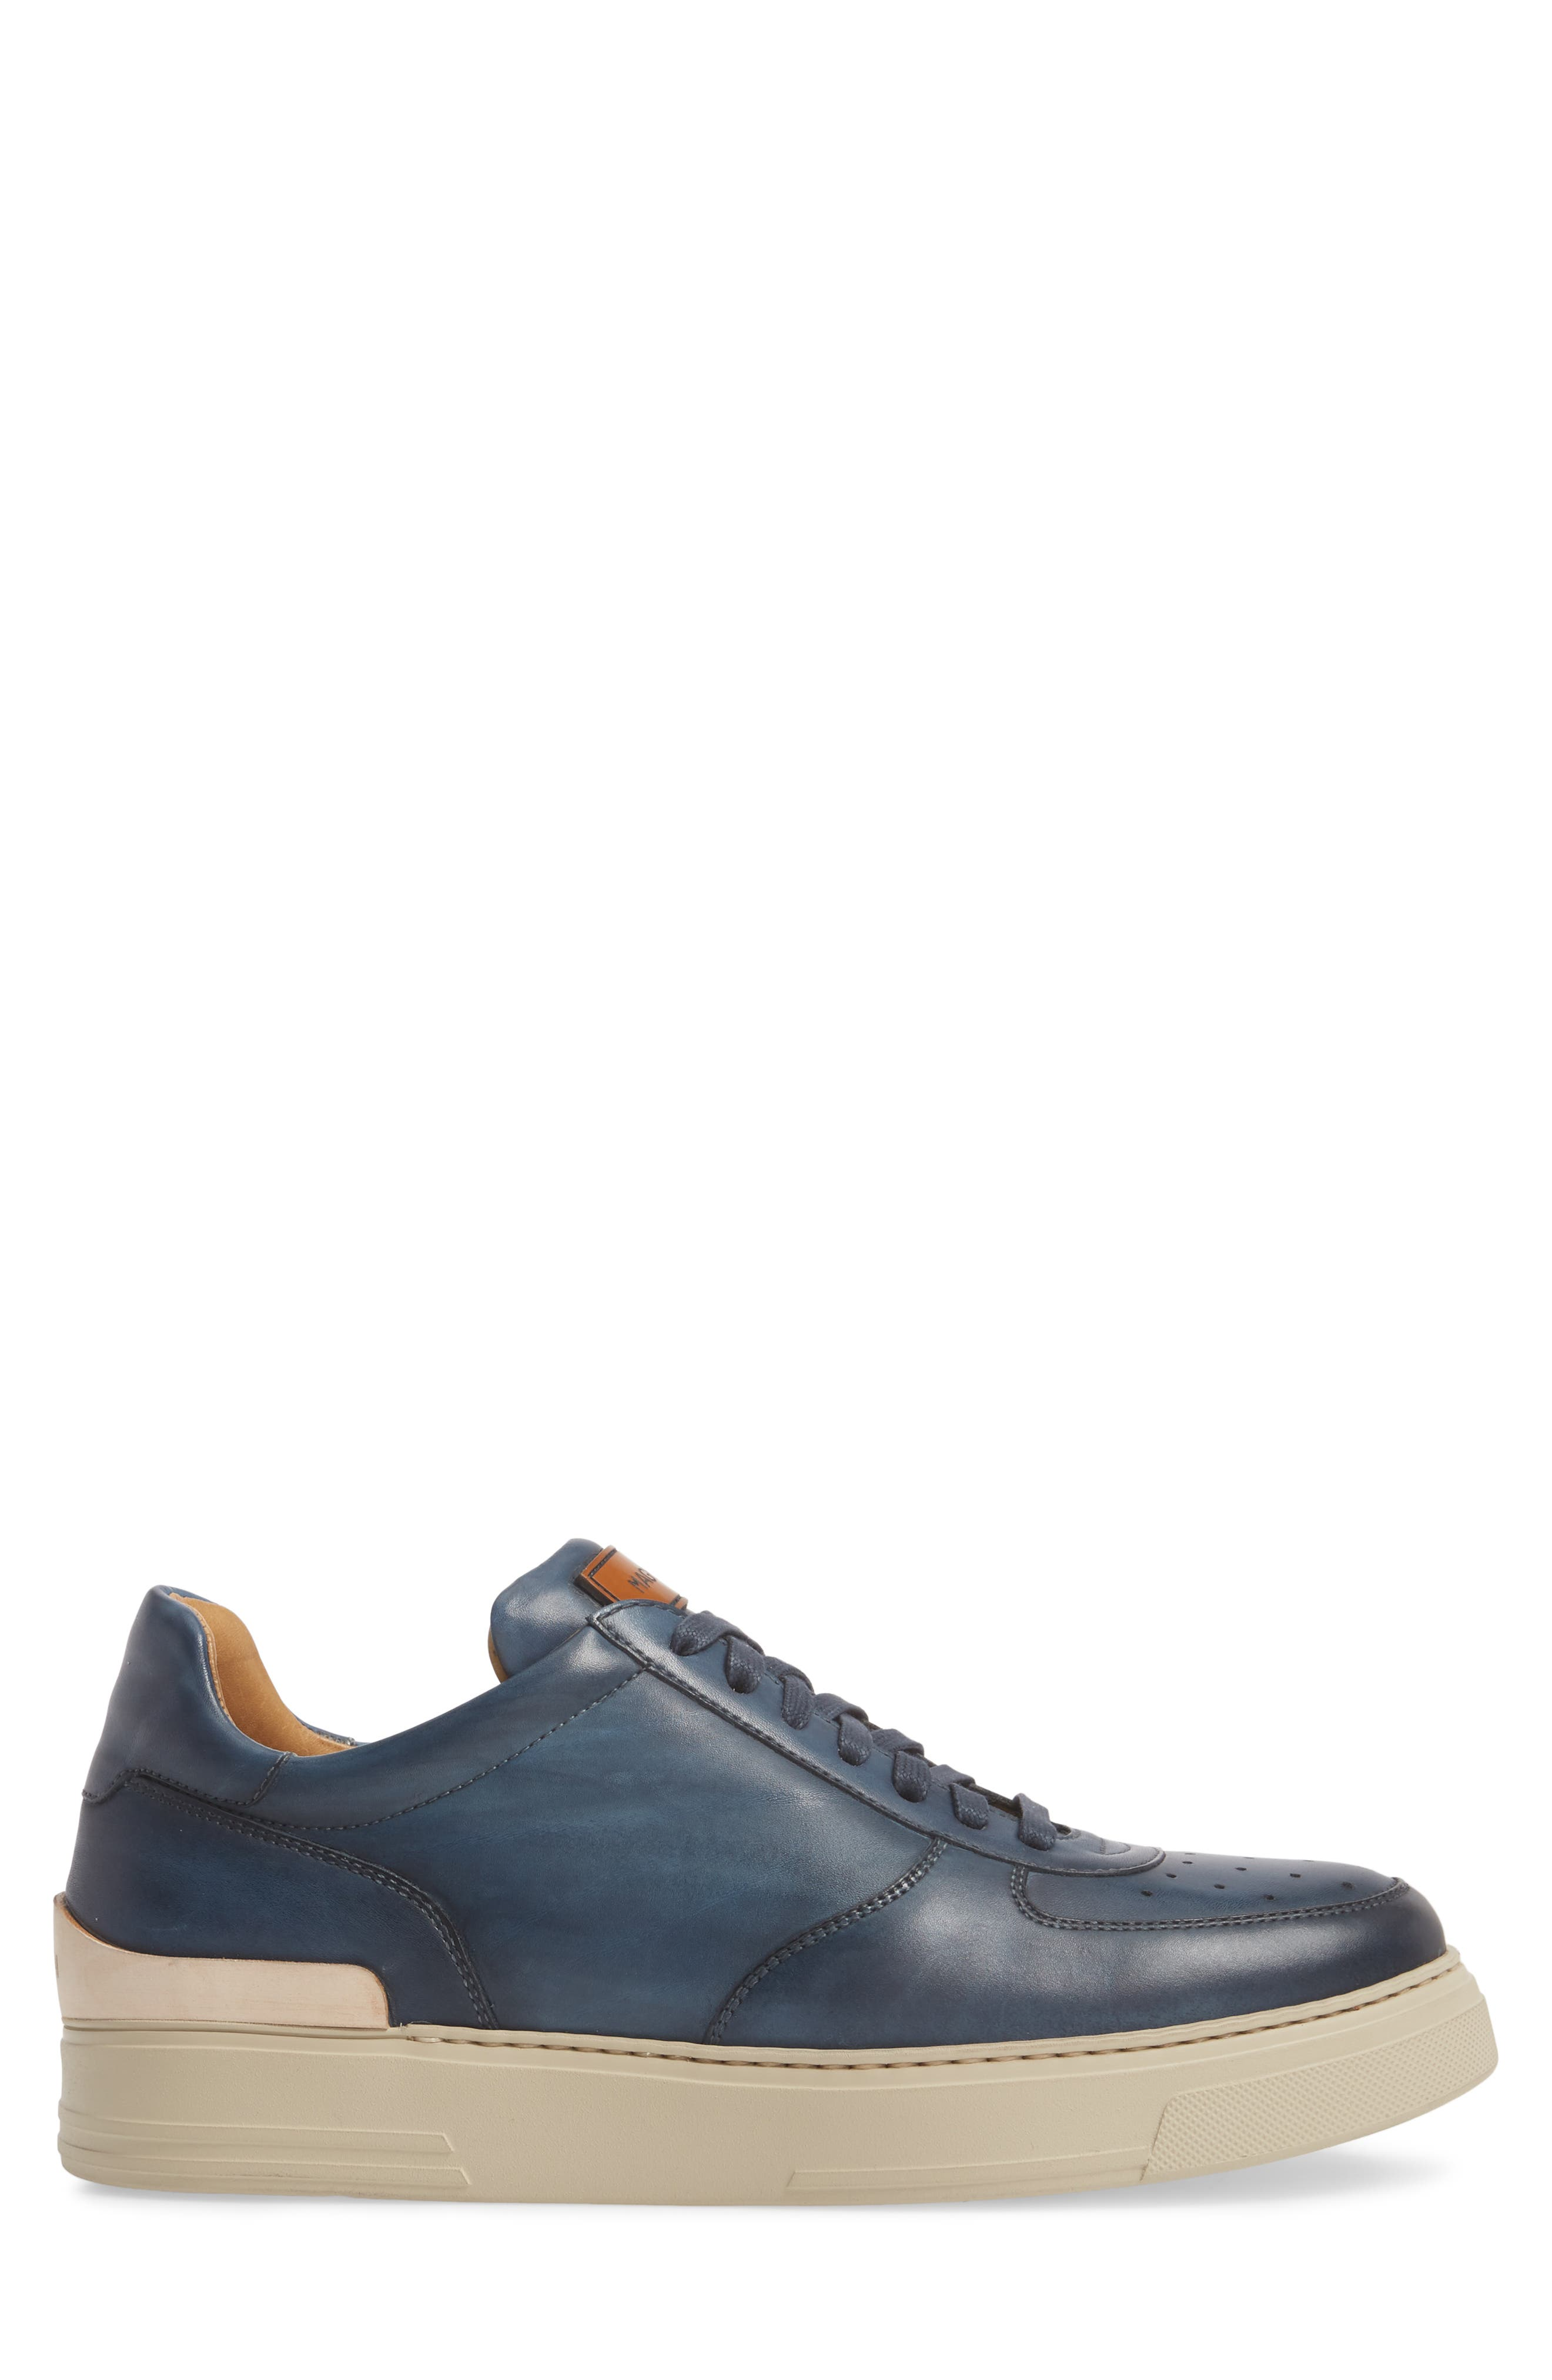 Vada Lo Lace Up Sneaker,                             Alternate thumbnail 3, color,                             Blue Leather